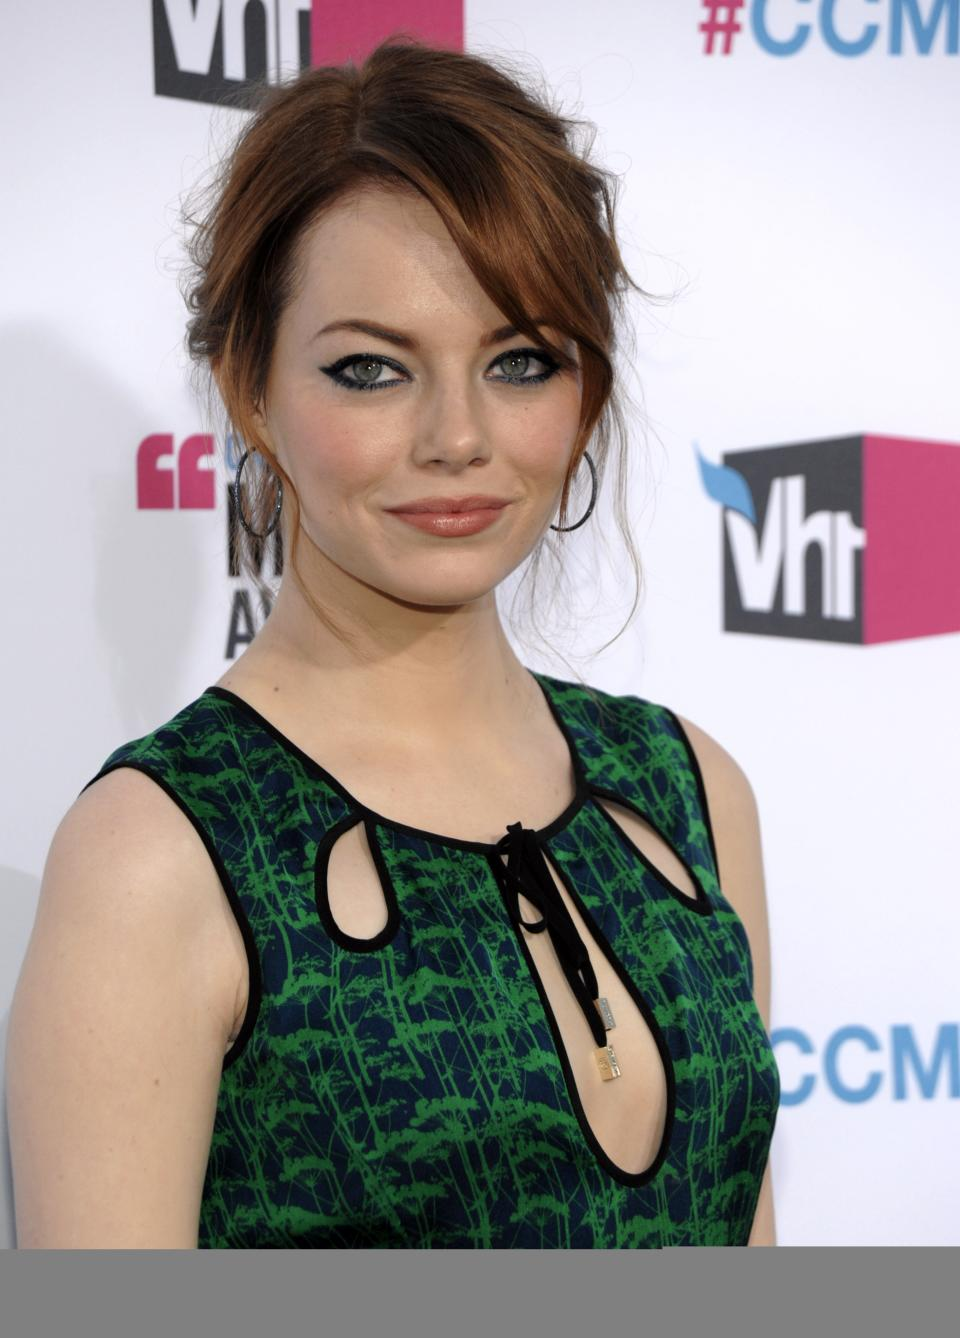 Emma Stone arrives at the 17th Annual Critics' Choice Movie Awards on Thursday, Jan. 12, 2012 in Los Angeles. (AP Photo/Dan Steinberg)